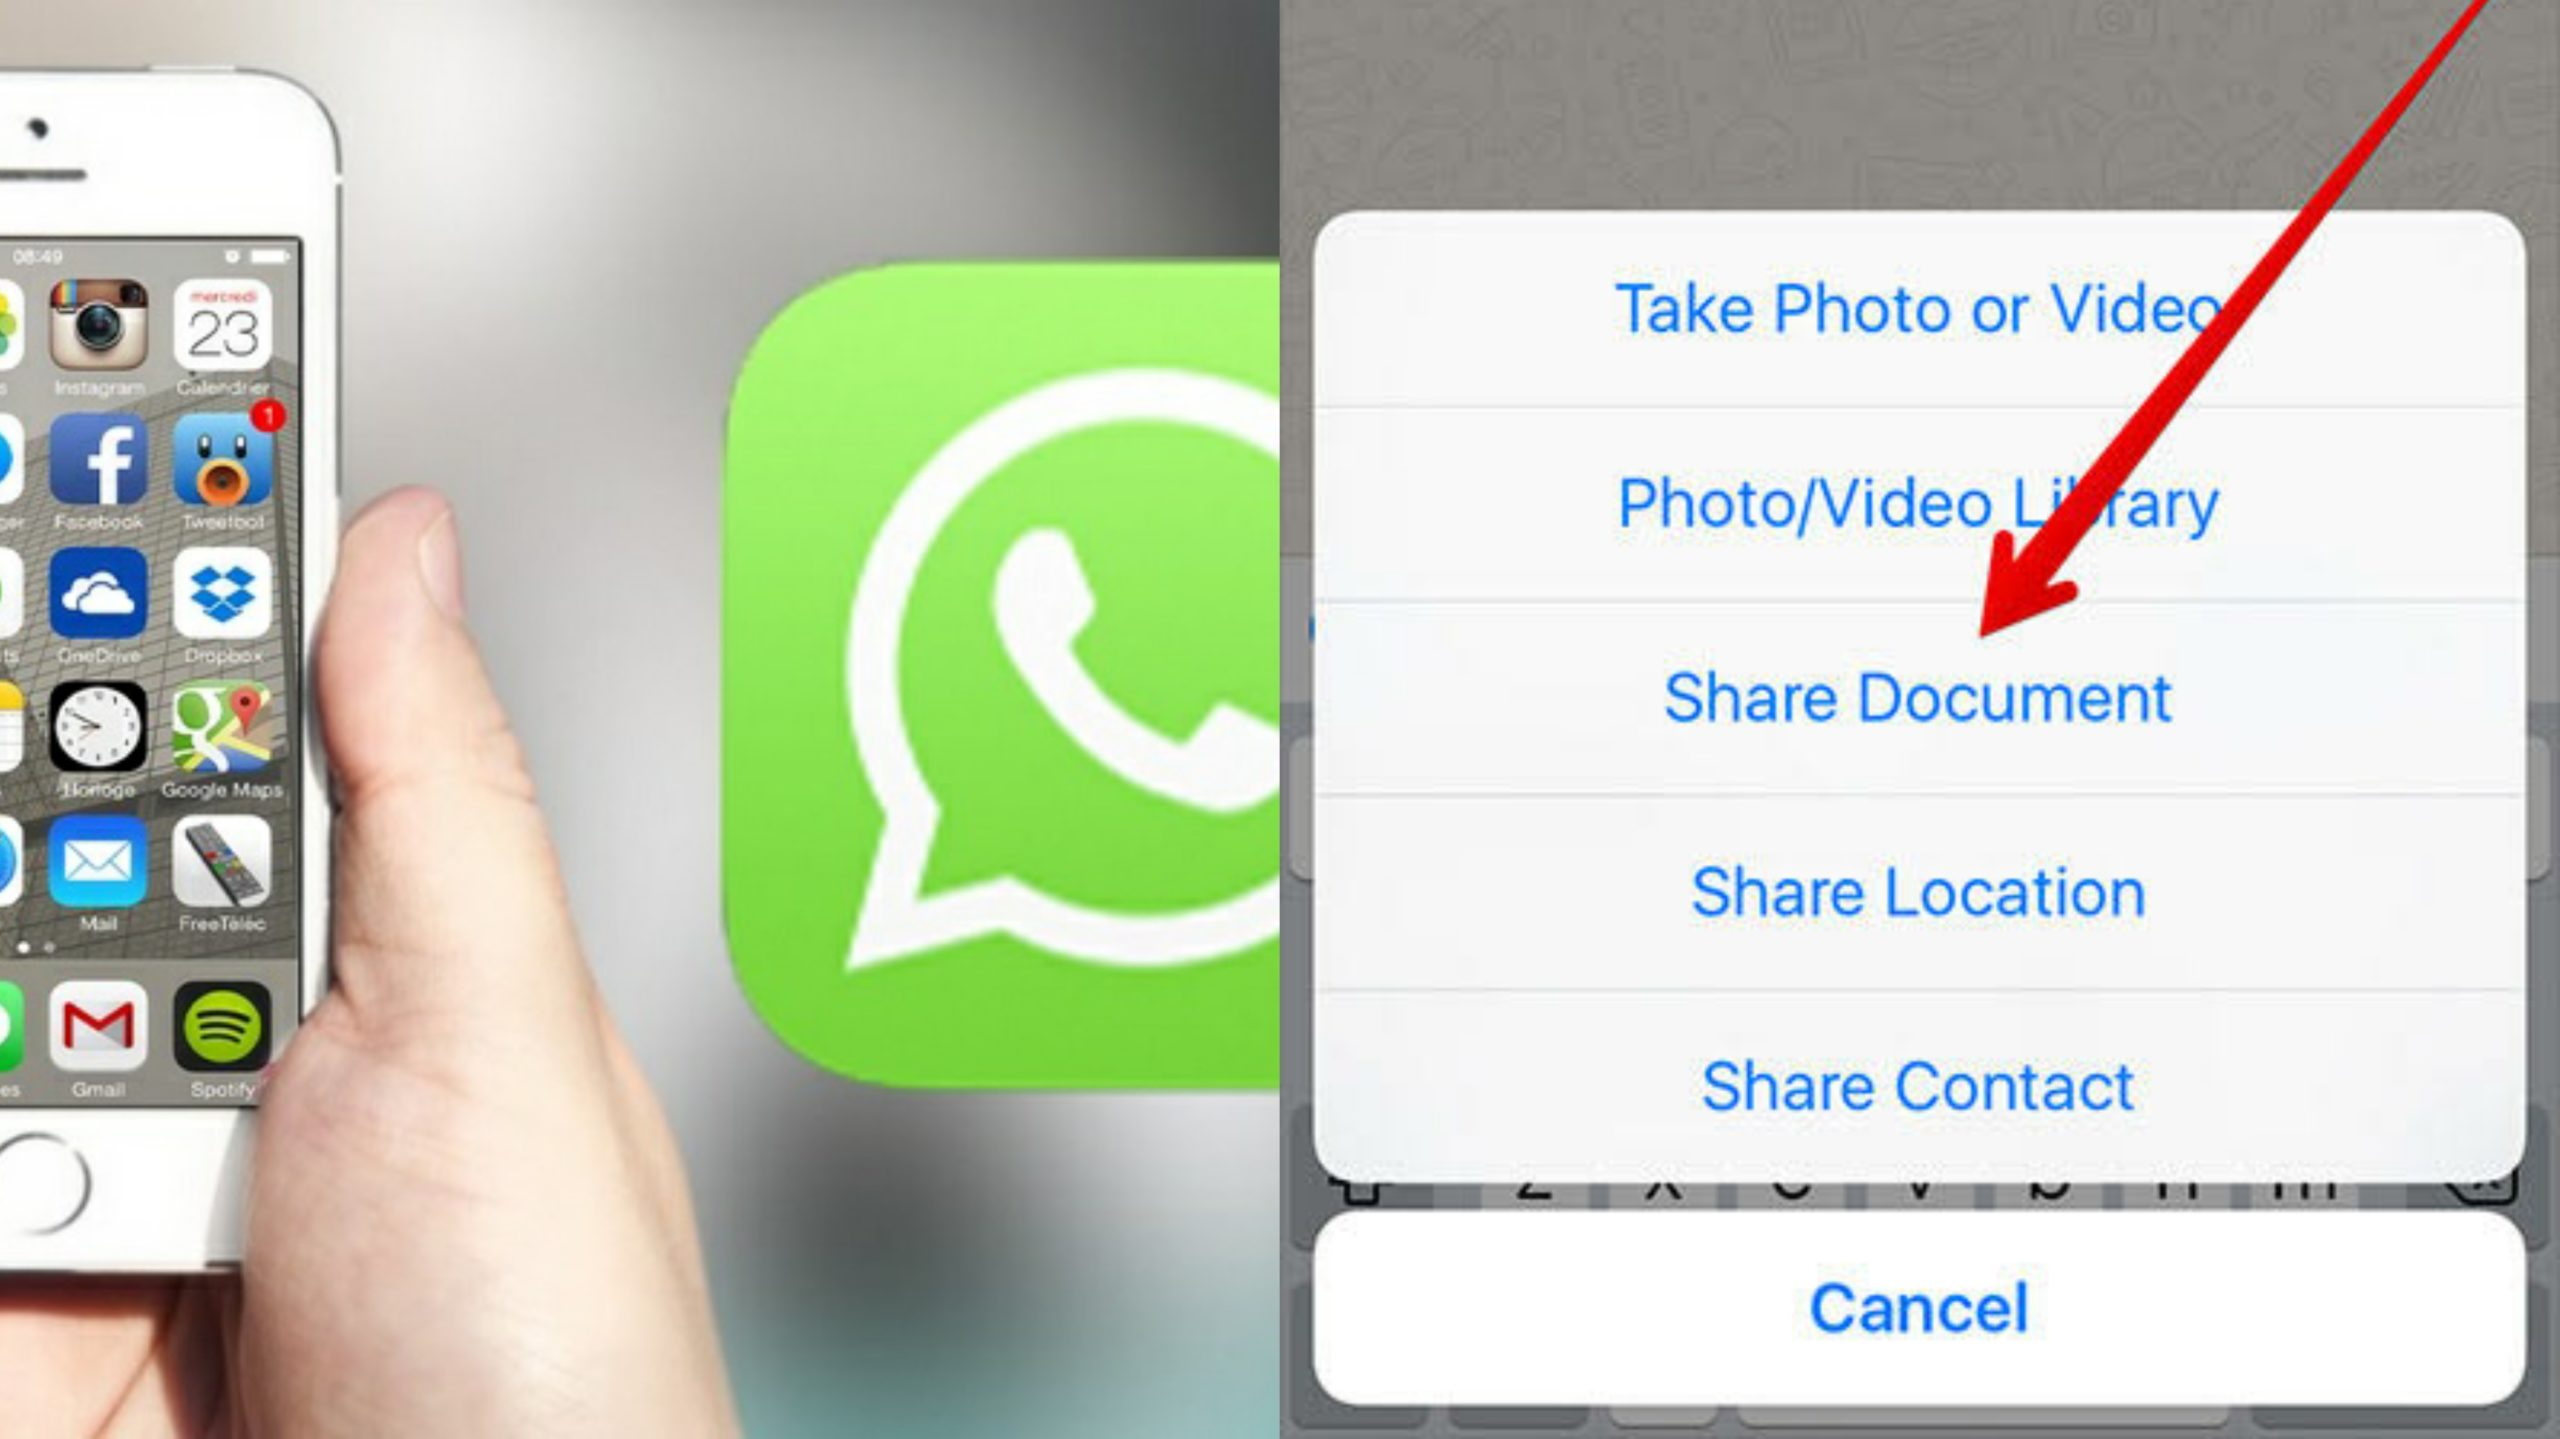 How to Transfer Documents on WhatsApp Using iPhone